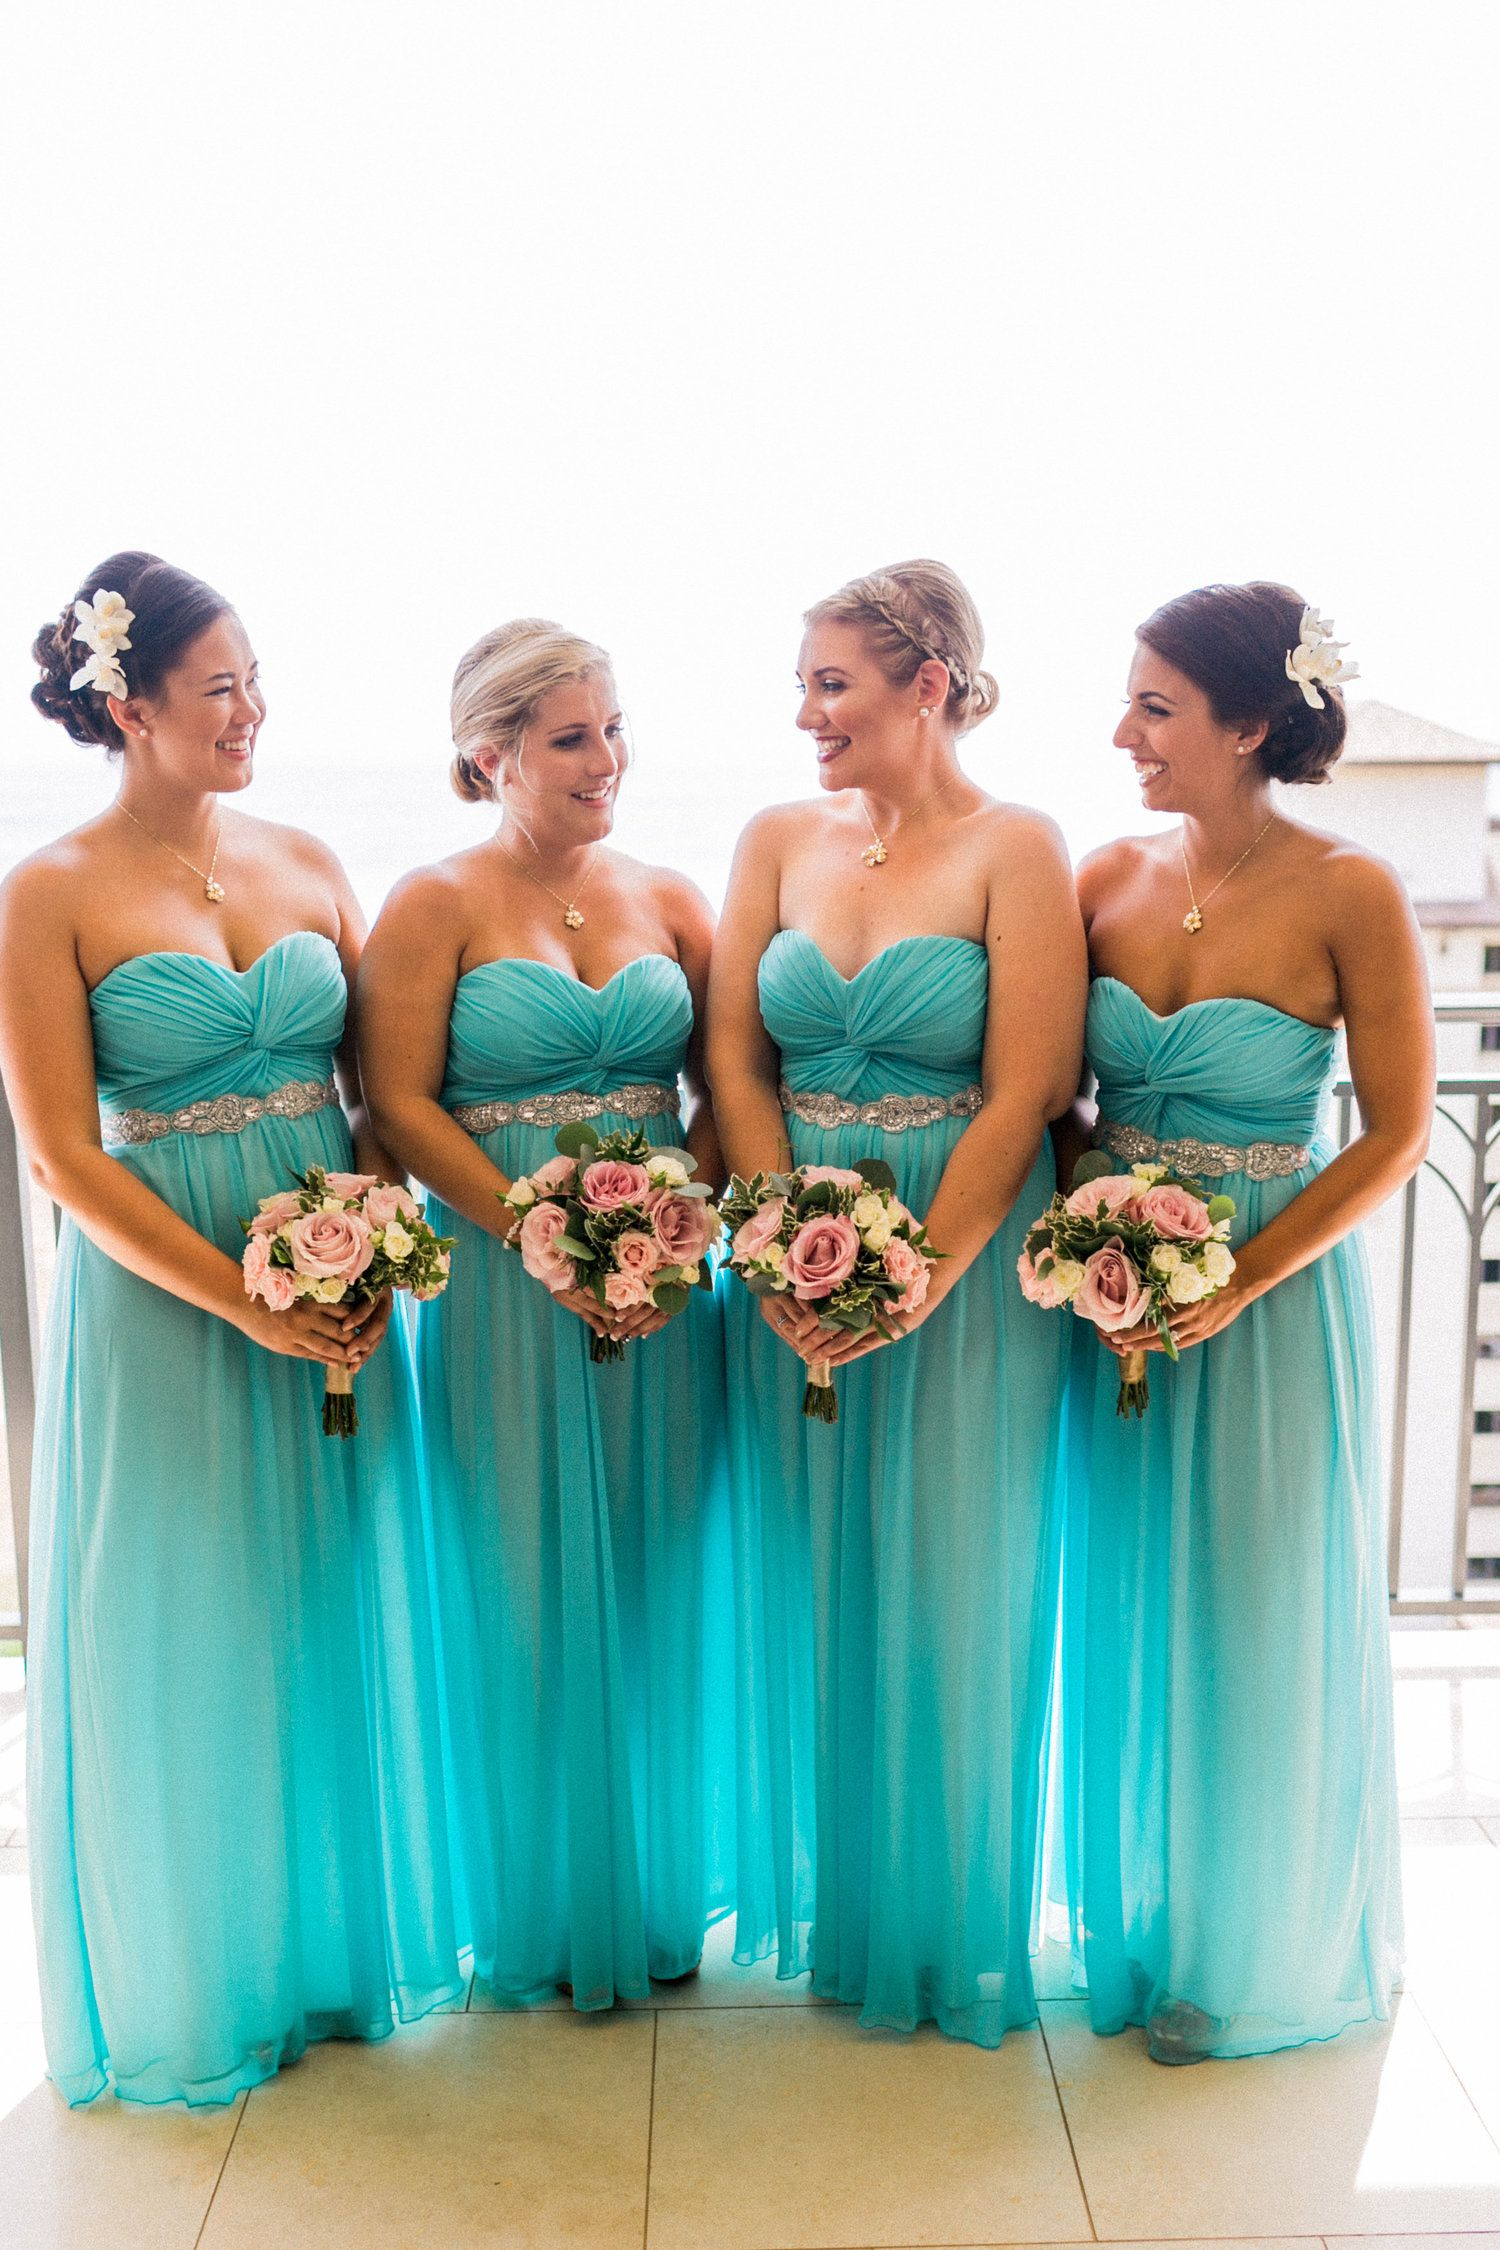 Gorgeous for Turquoise bridesmaid dresses for beach wedding